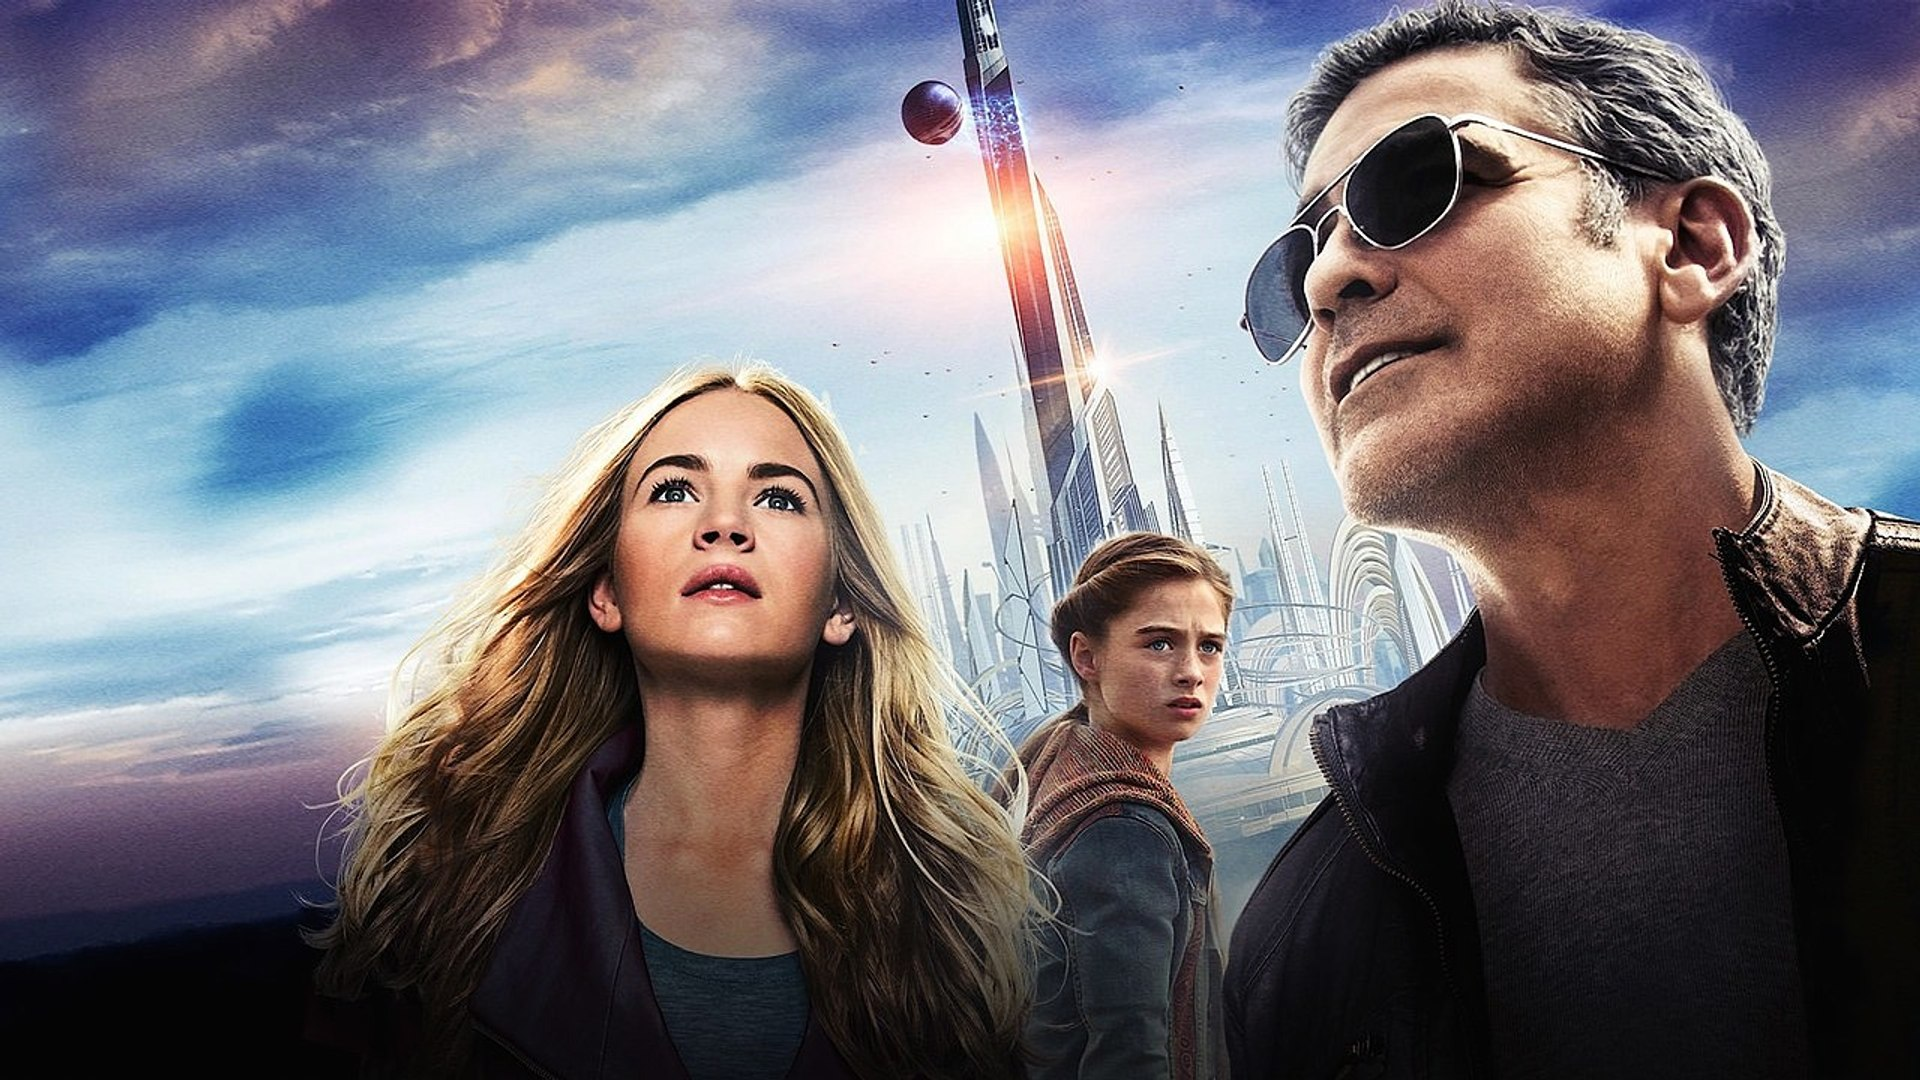 Official Watch Tomorrowland Full HD 1080P Streaming For Free